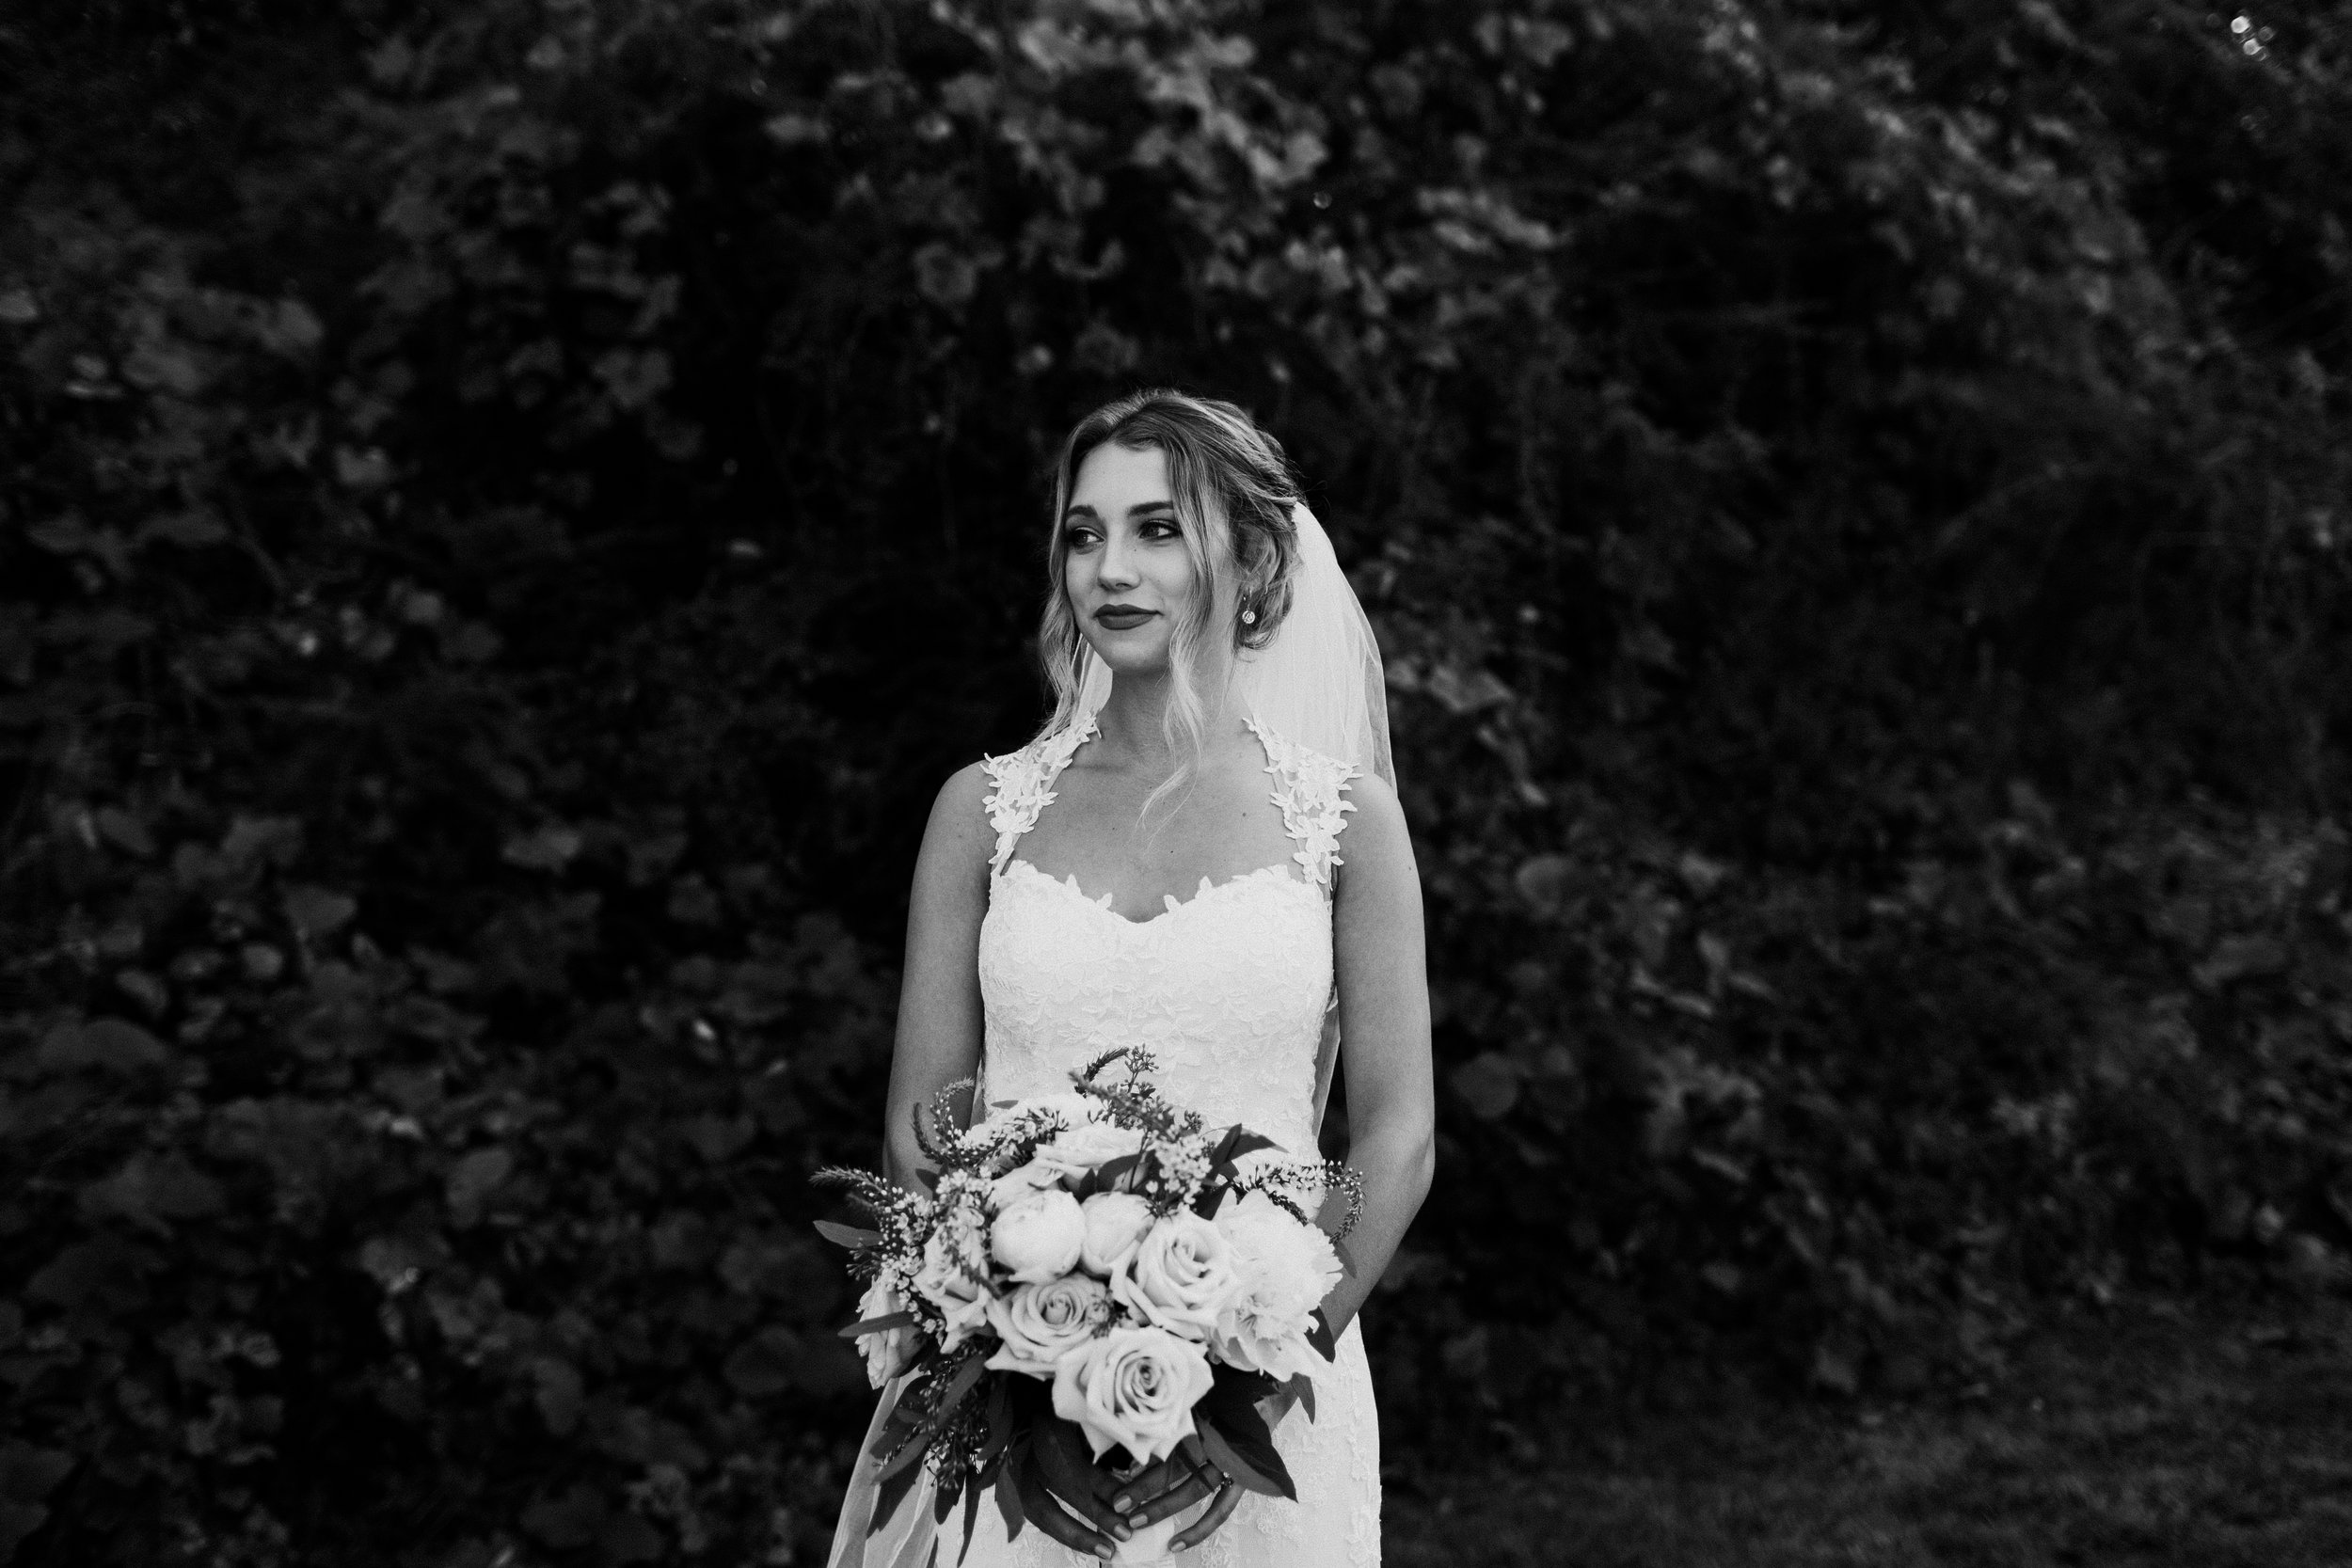 cailin+hails_destination_wedding_fairhope_daphne_mobile_alabama_madisonrylee_0071.jpg